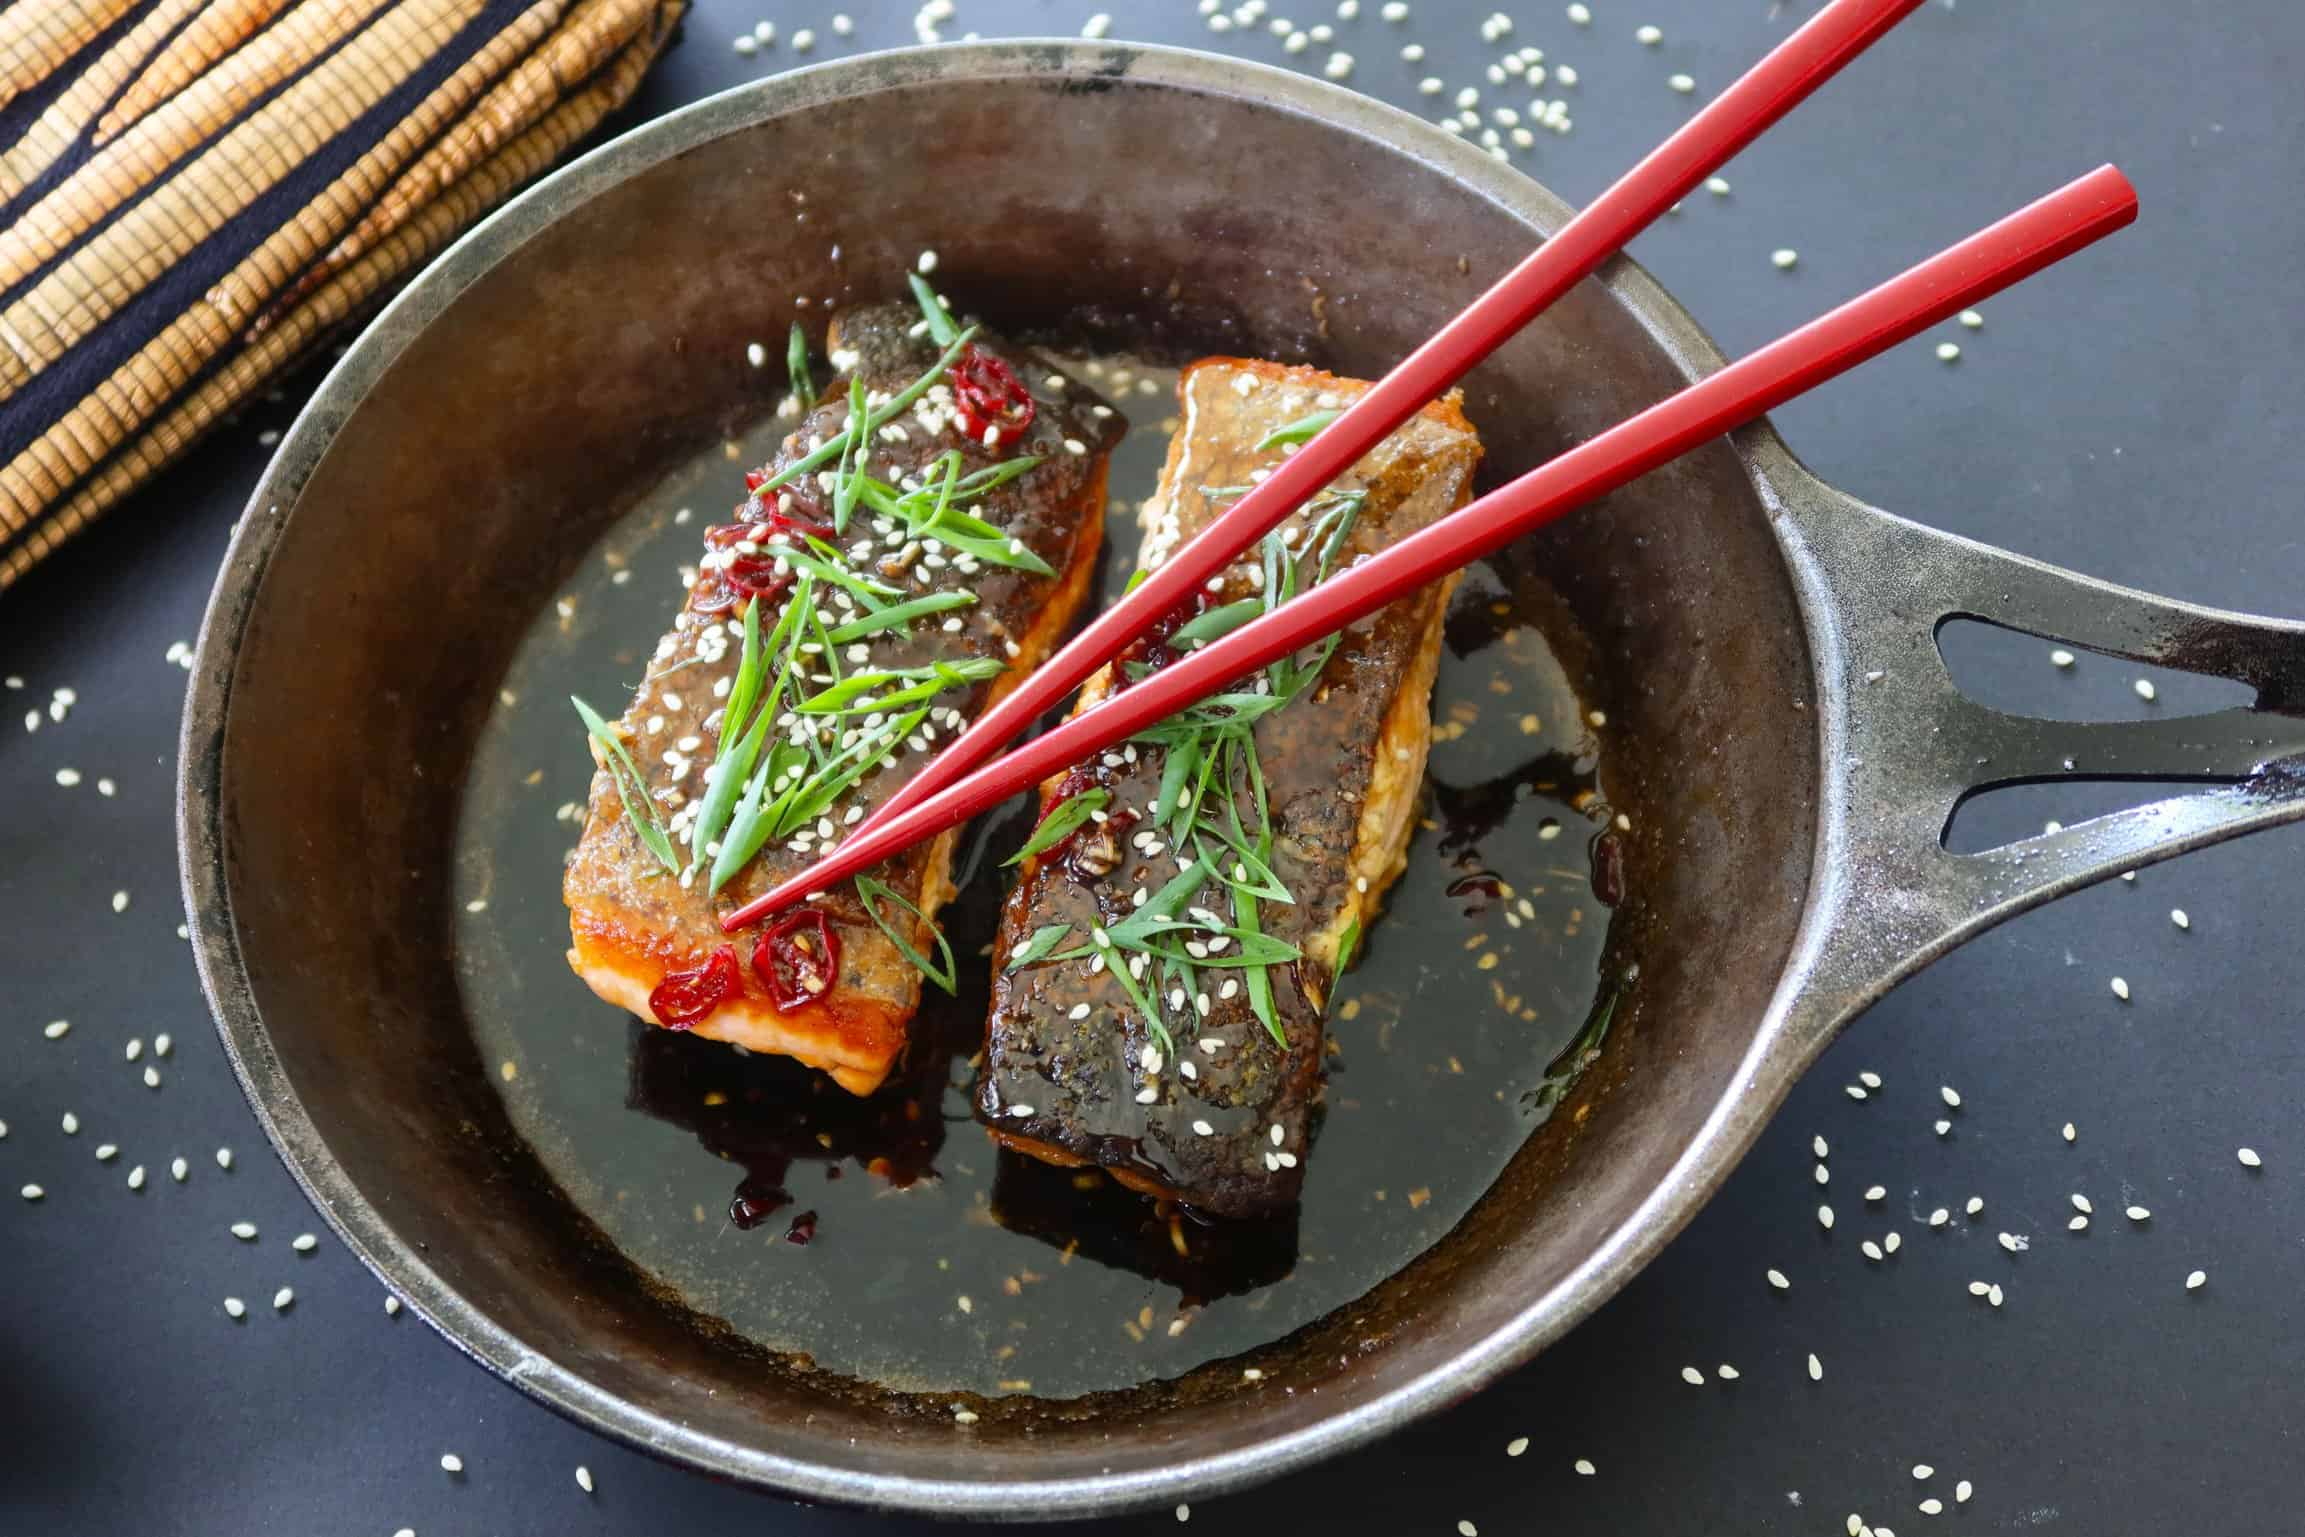 crispy skinned chilli caramel salmon ready to serve in a cast iron frypan with red chopsticks